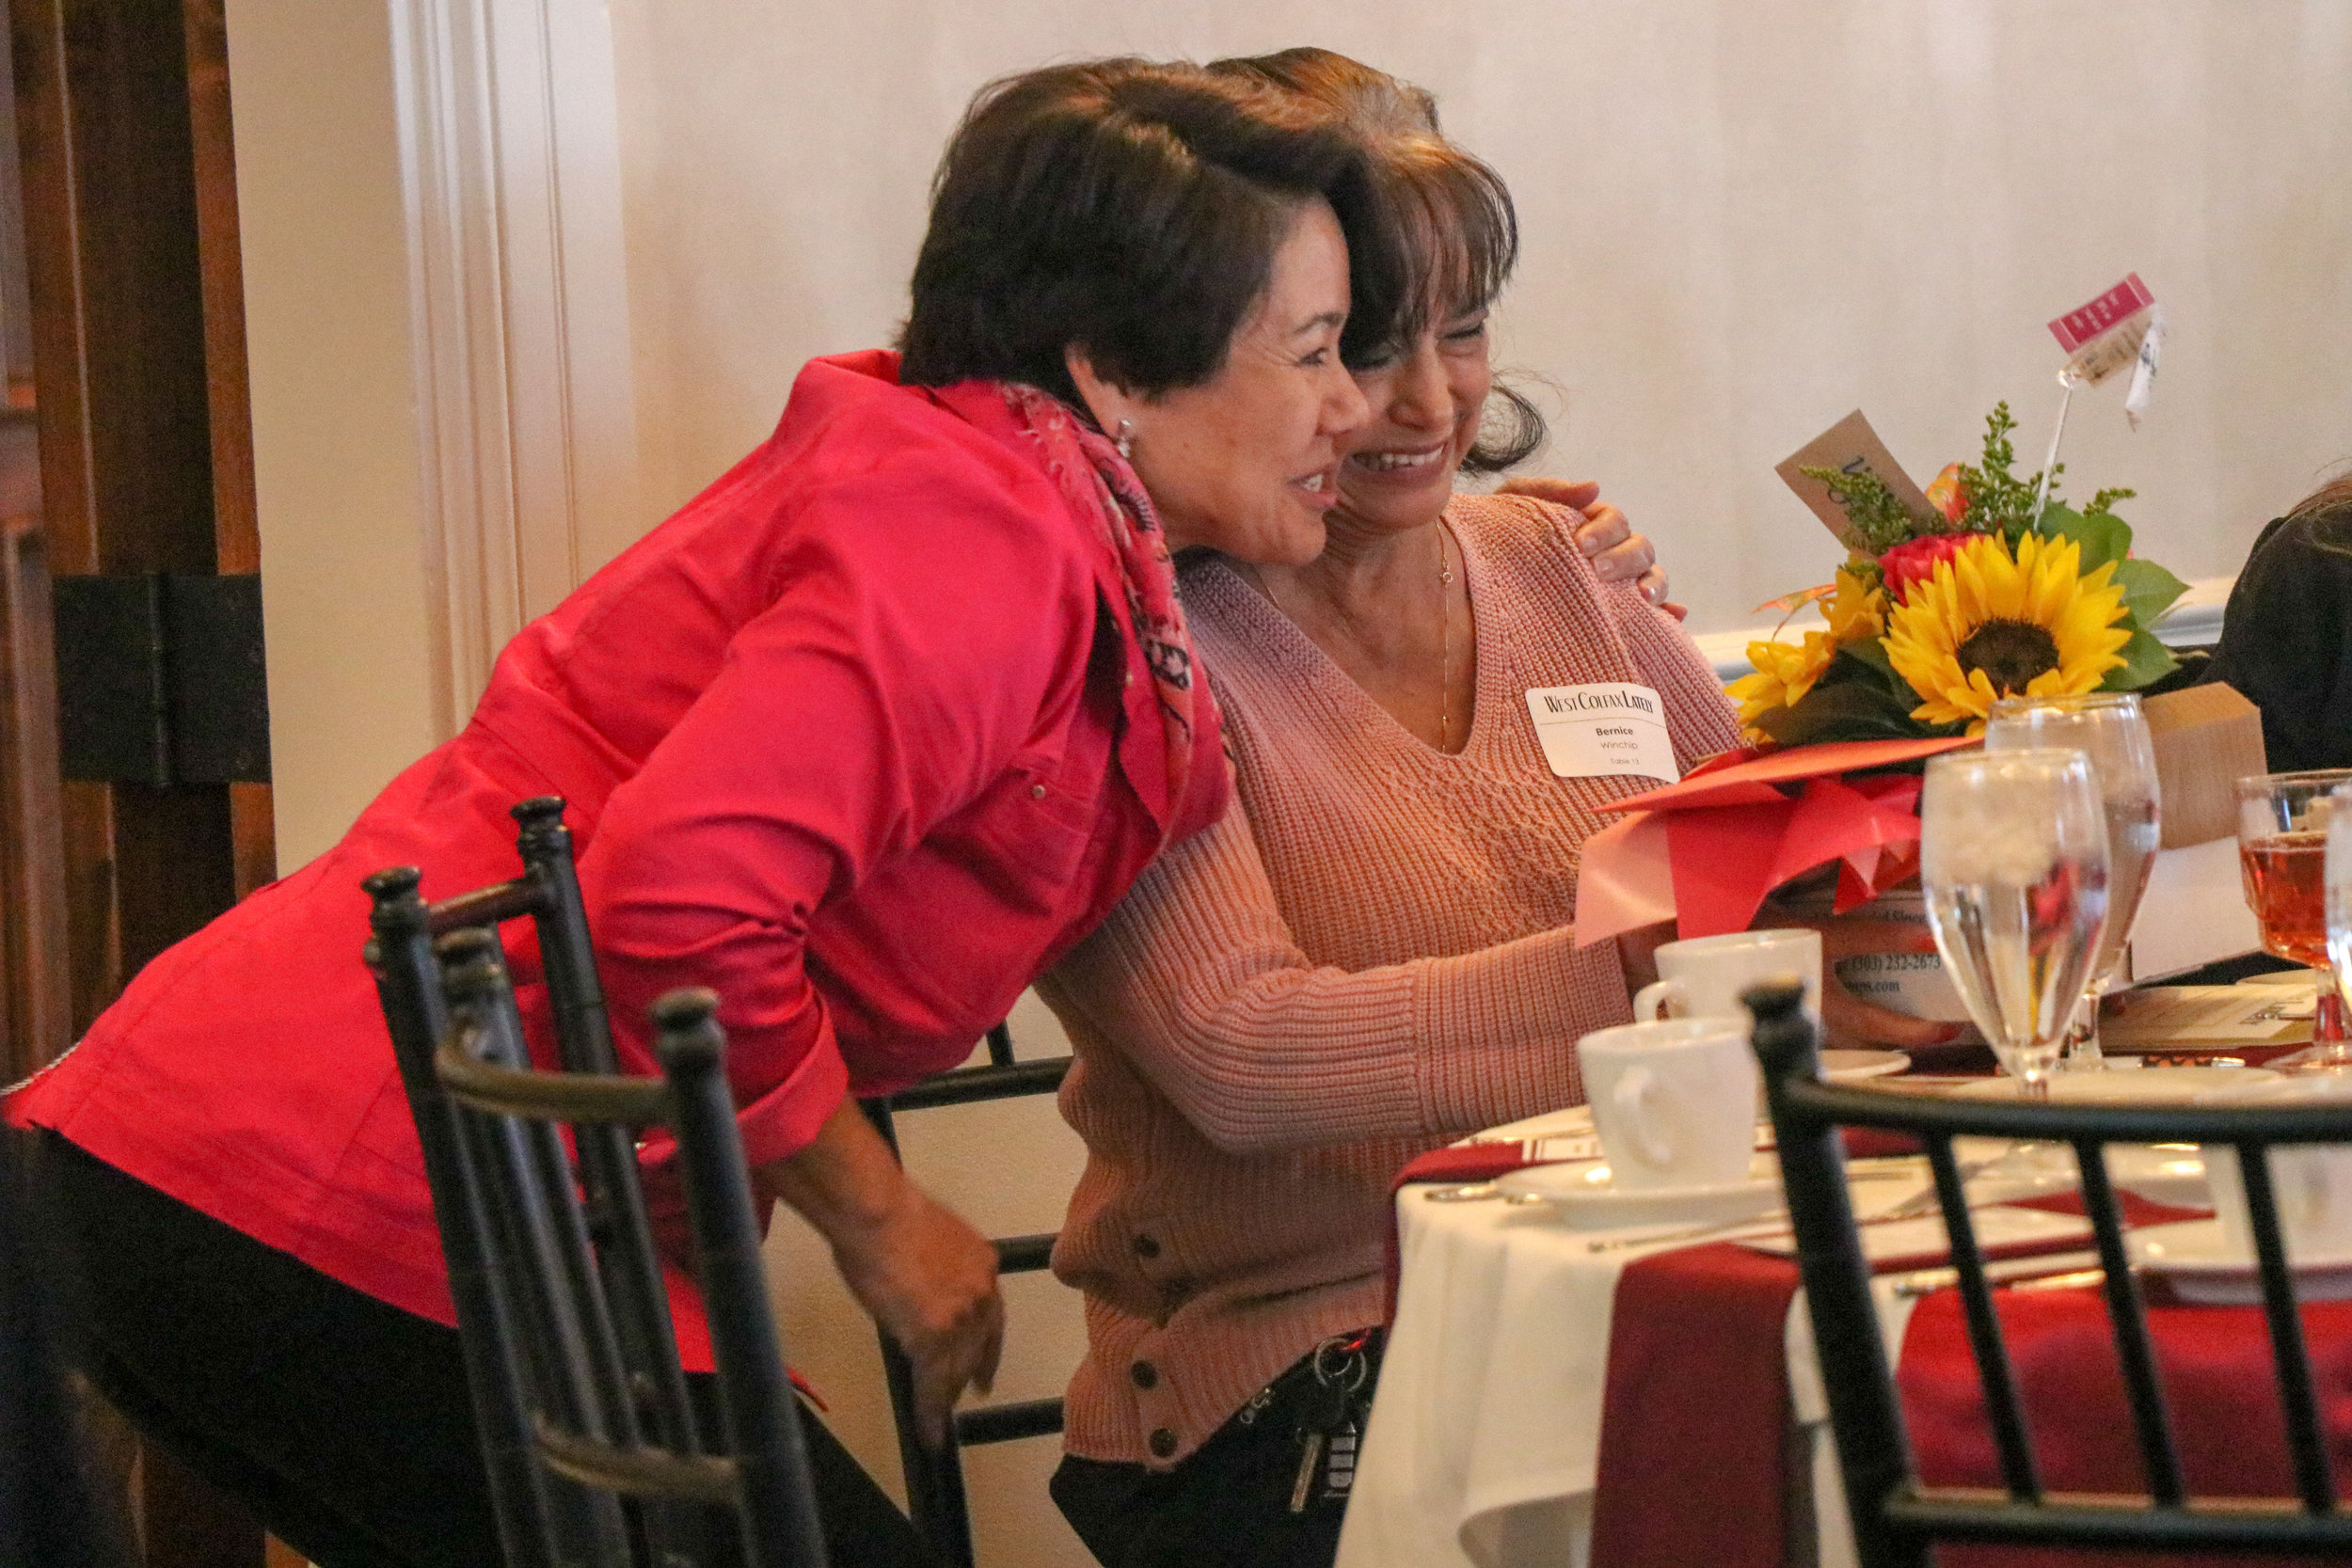 Cindy Baroway hugs Bernice Winchip of Guidos Nickelbar as she is honored for being a central member to the community. Thanks for the breakfast burritos!